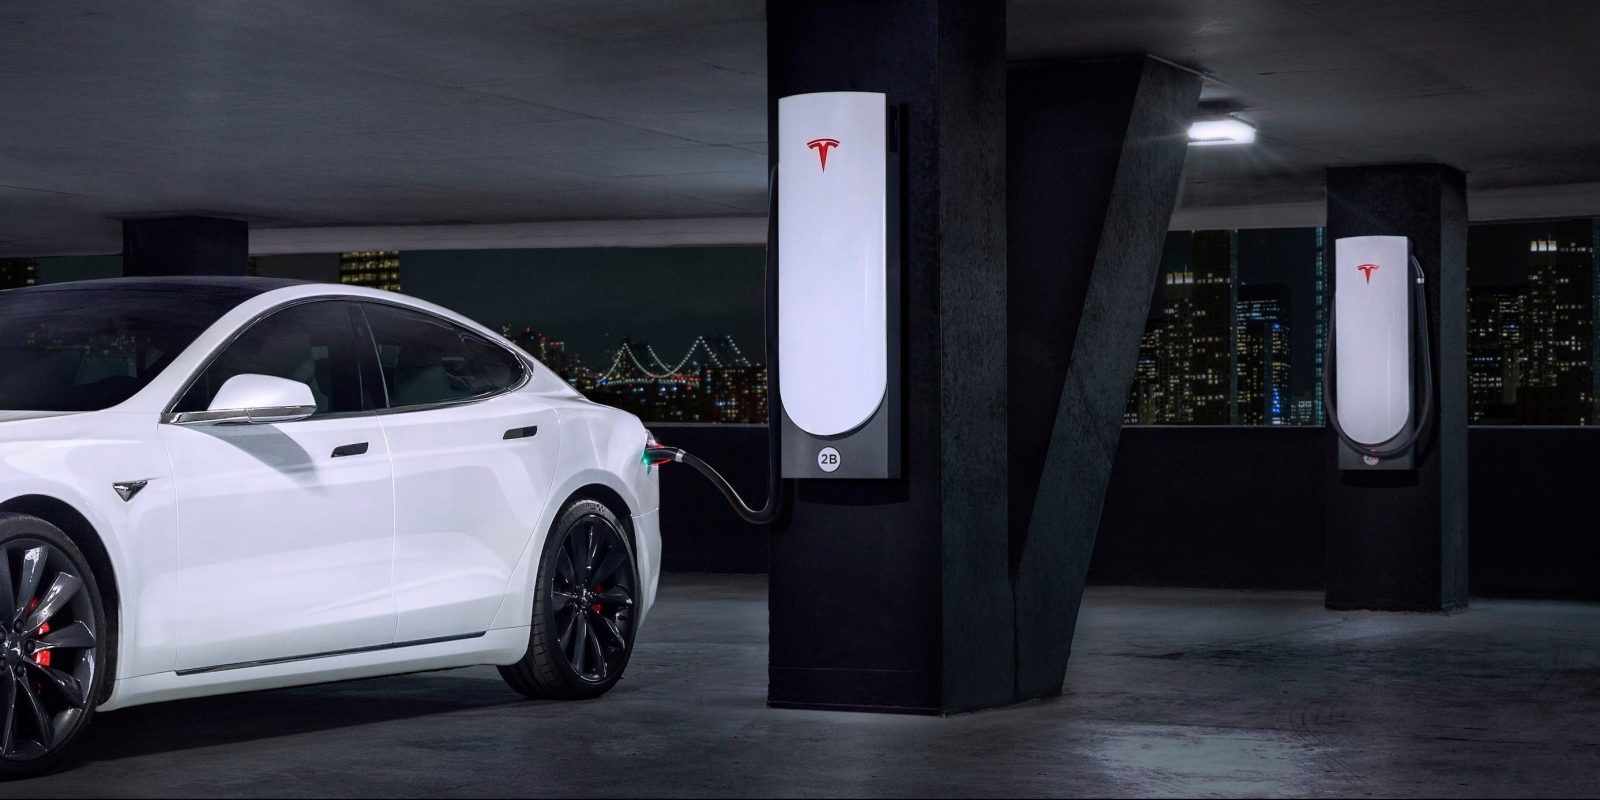 Tesla Expands Charging Infrastructure In New York With Urban Supercharger Stations